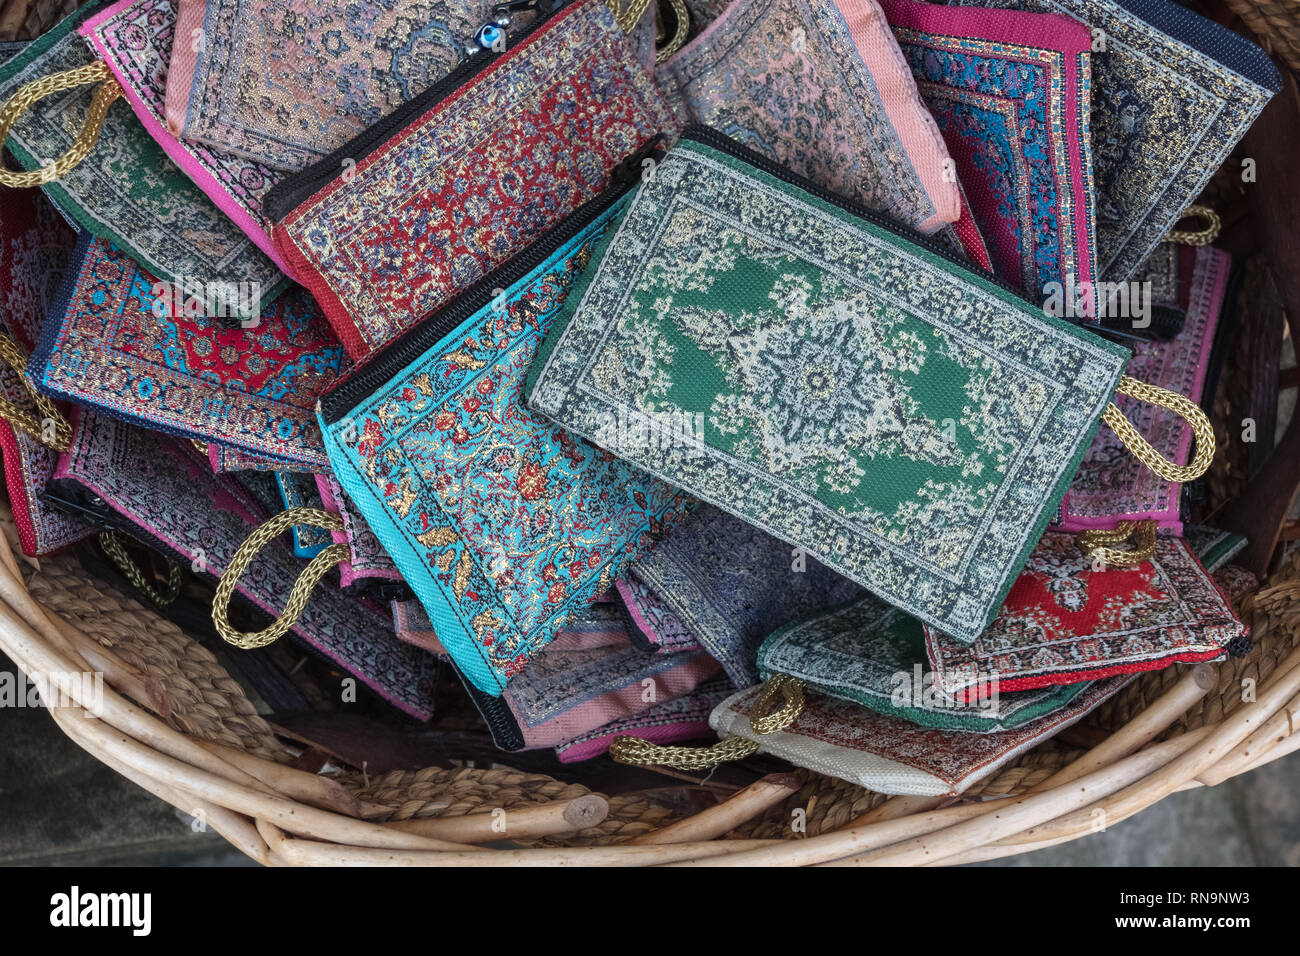 Simple, zippered wallets or purses for sale in souvenir shop basket.  Patterns are delicate, geometric and intricate. - Stock Image